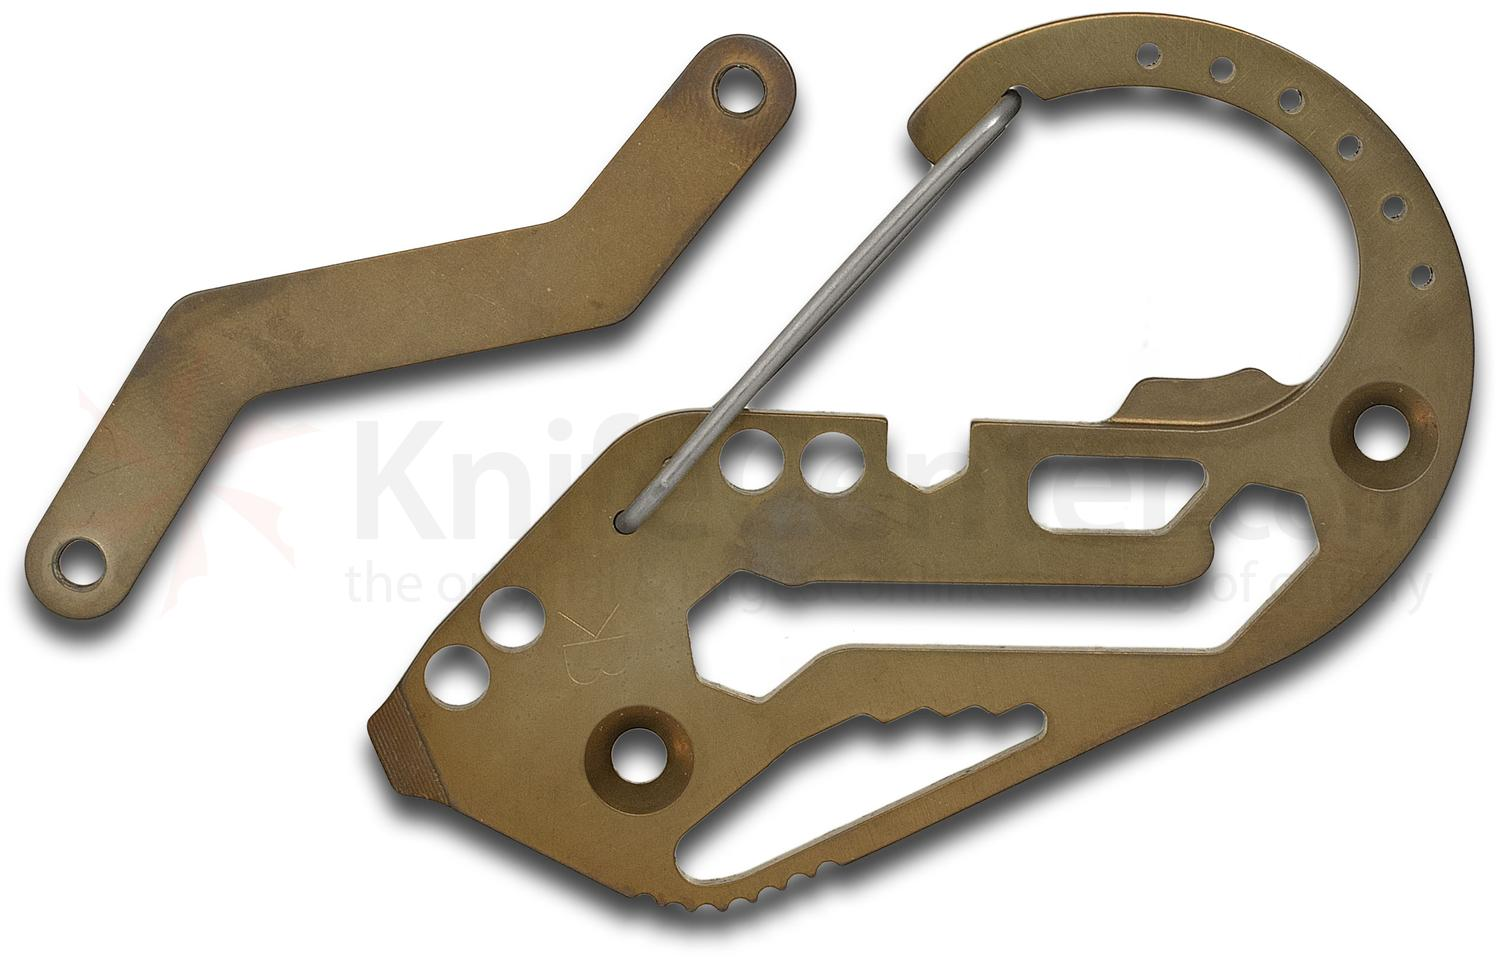 Fortius Arms Bronze Anodized Titanium KeyBiner Carabiner Key Retention System